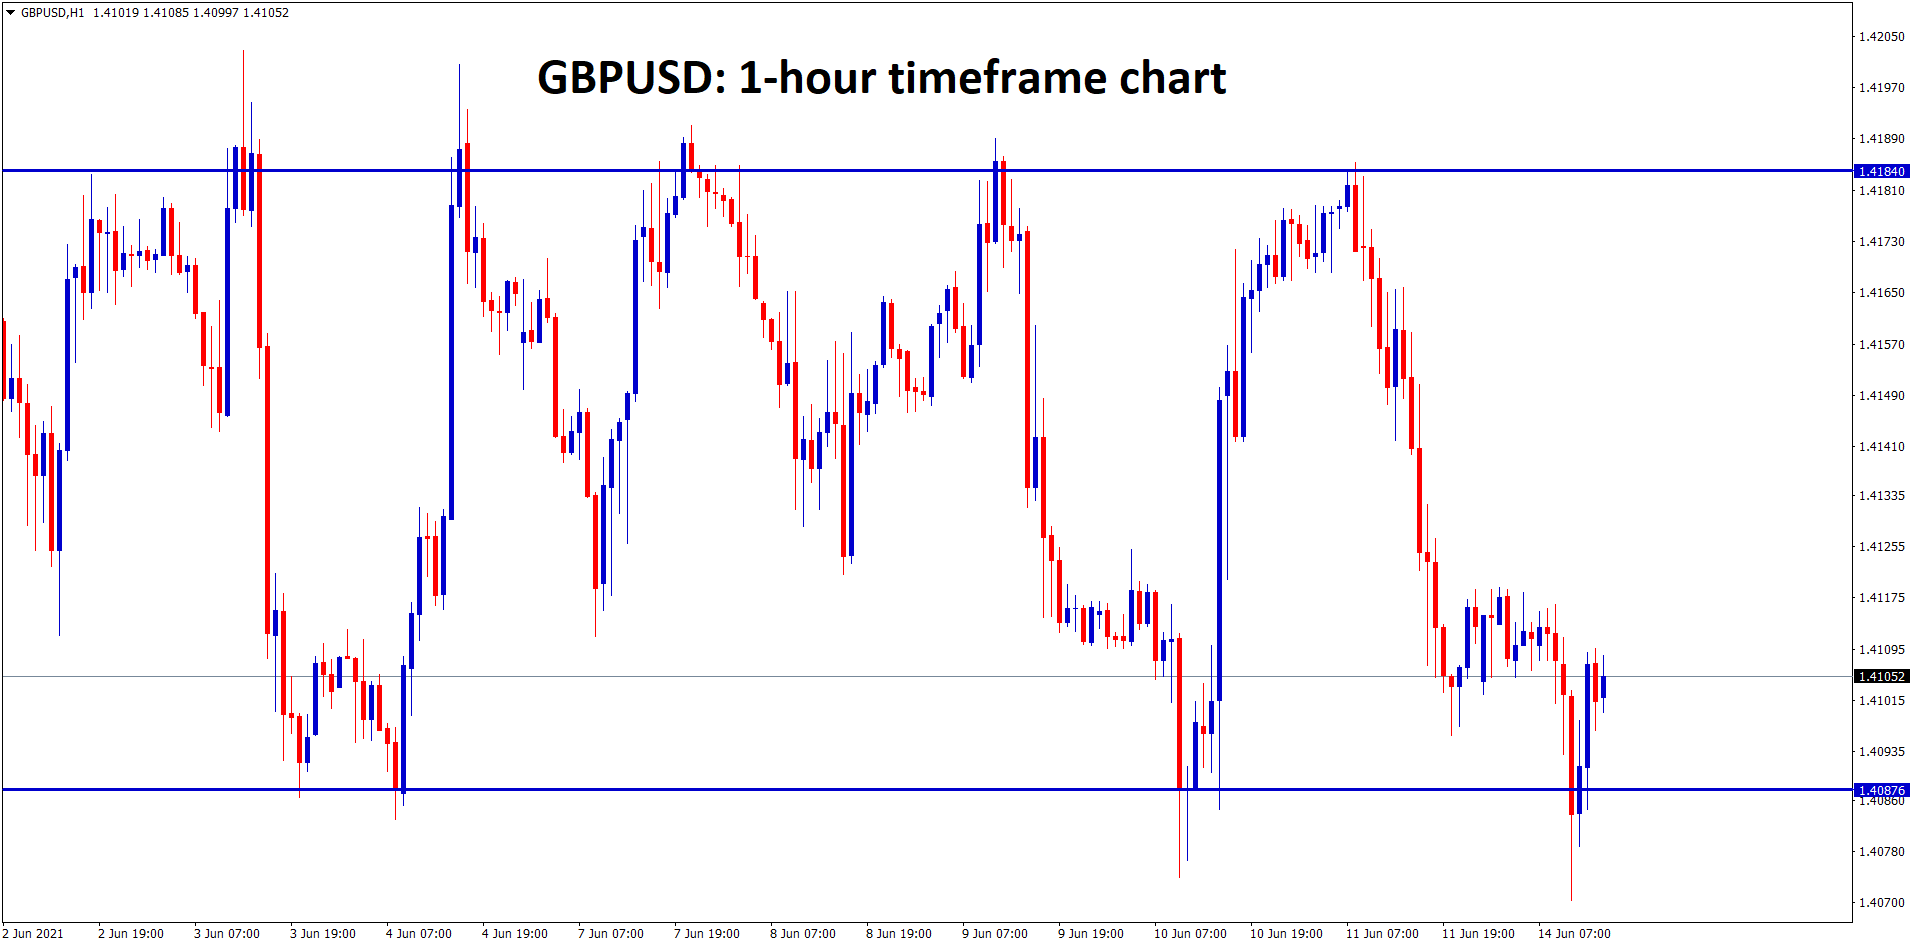 GBPUSD is moving up and down between the Resistance and Support lines